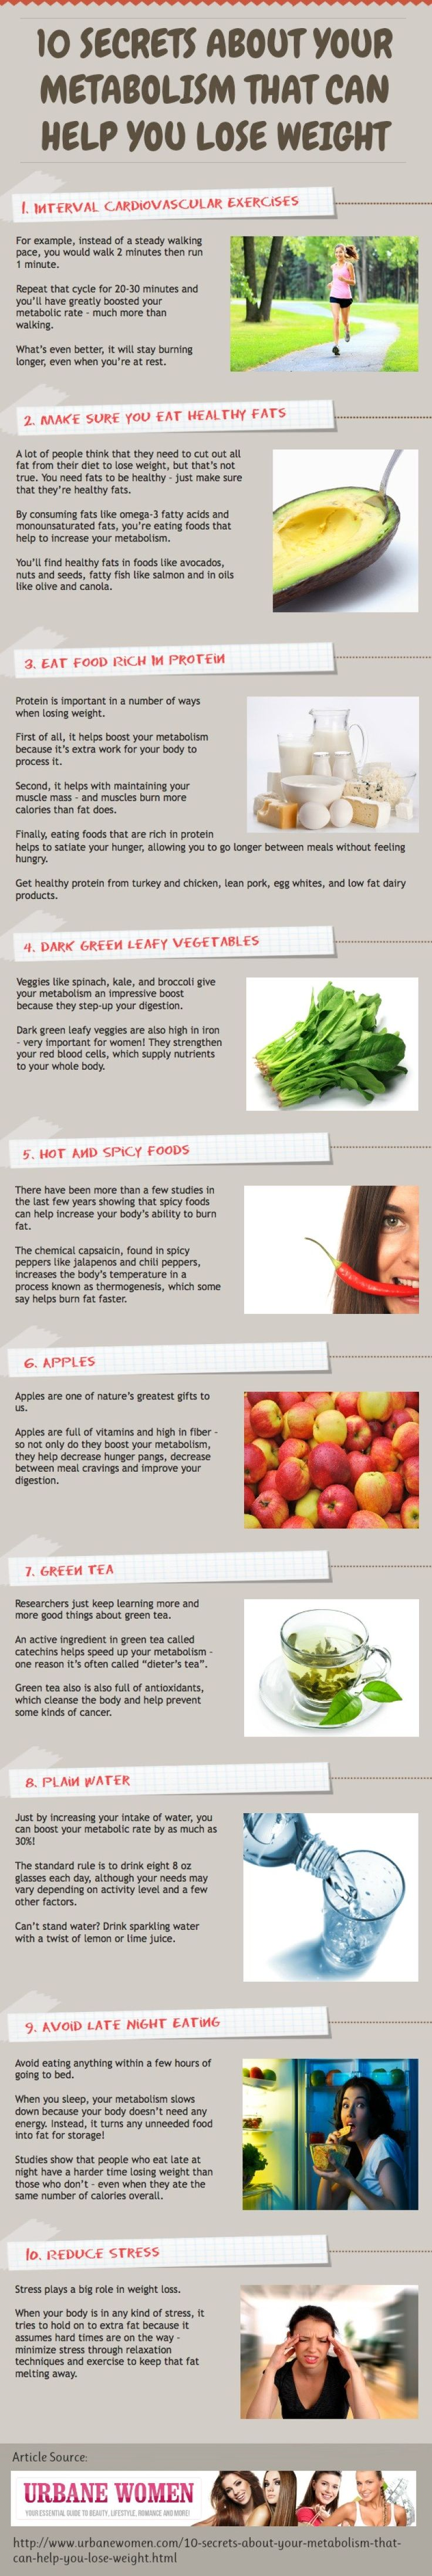 HEALTHY LIFESTYLE - 10 Secrets About Your Metabolism That Can Help You Lose Weight.